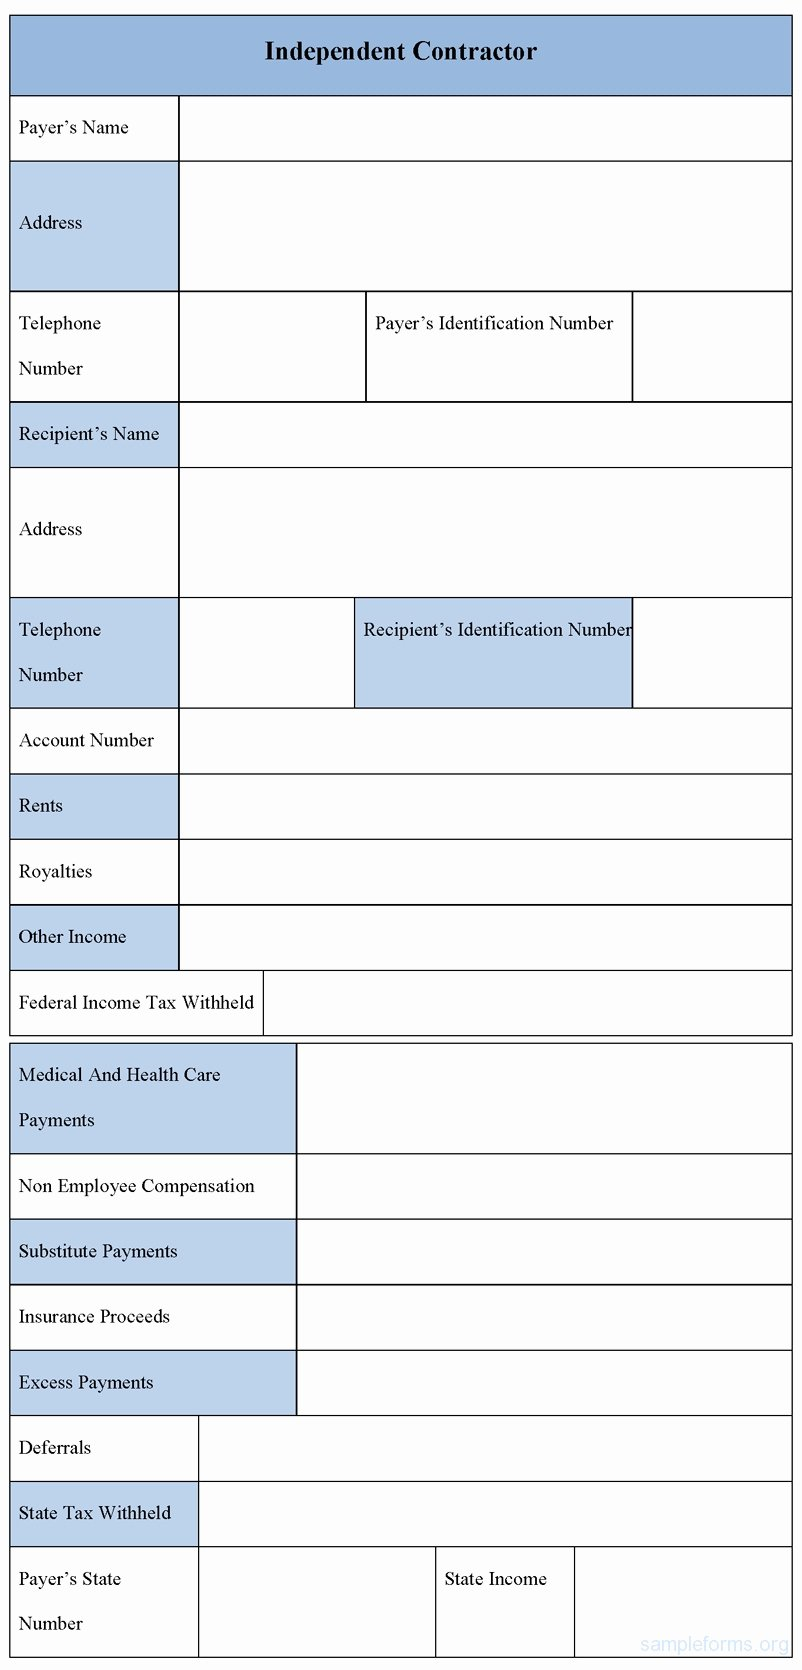 Independent Contractor Invoice Template Best Of Sample Independent Contractor Invoice Invoice Template Ideas